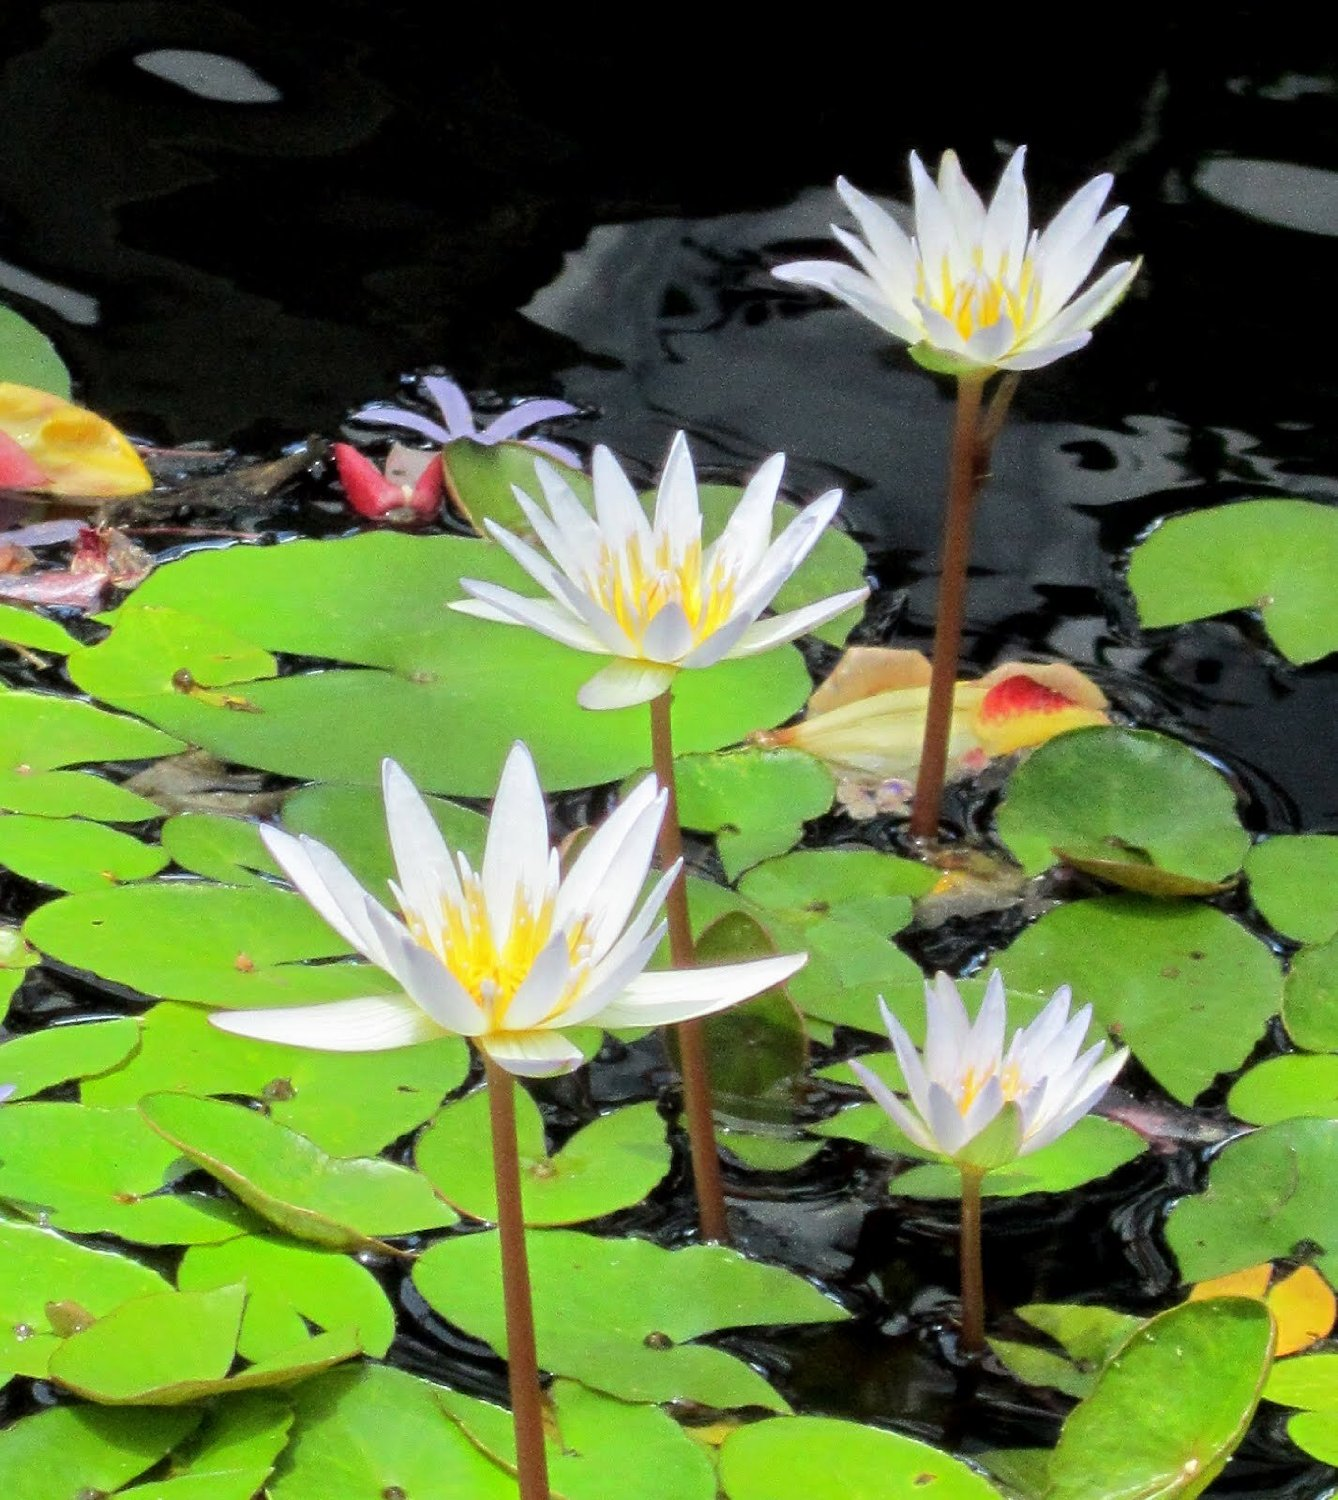 White tropical water lily water garden live pond plant for Aquatic garden plants